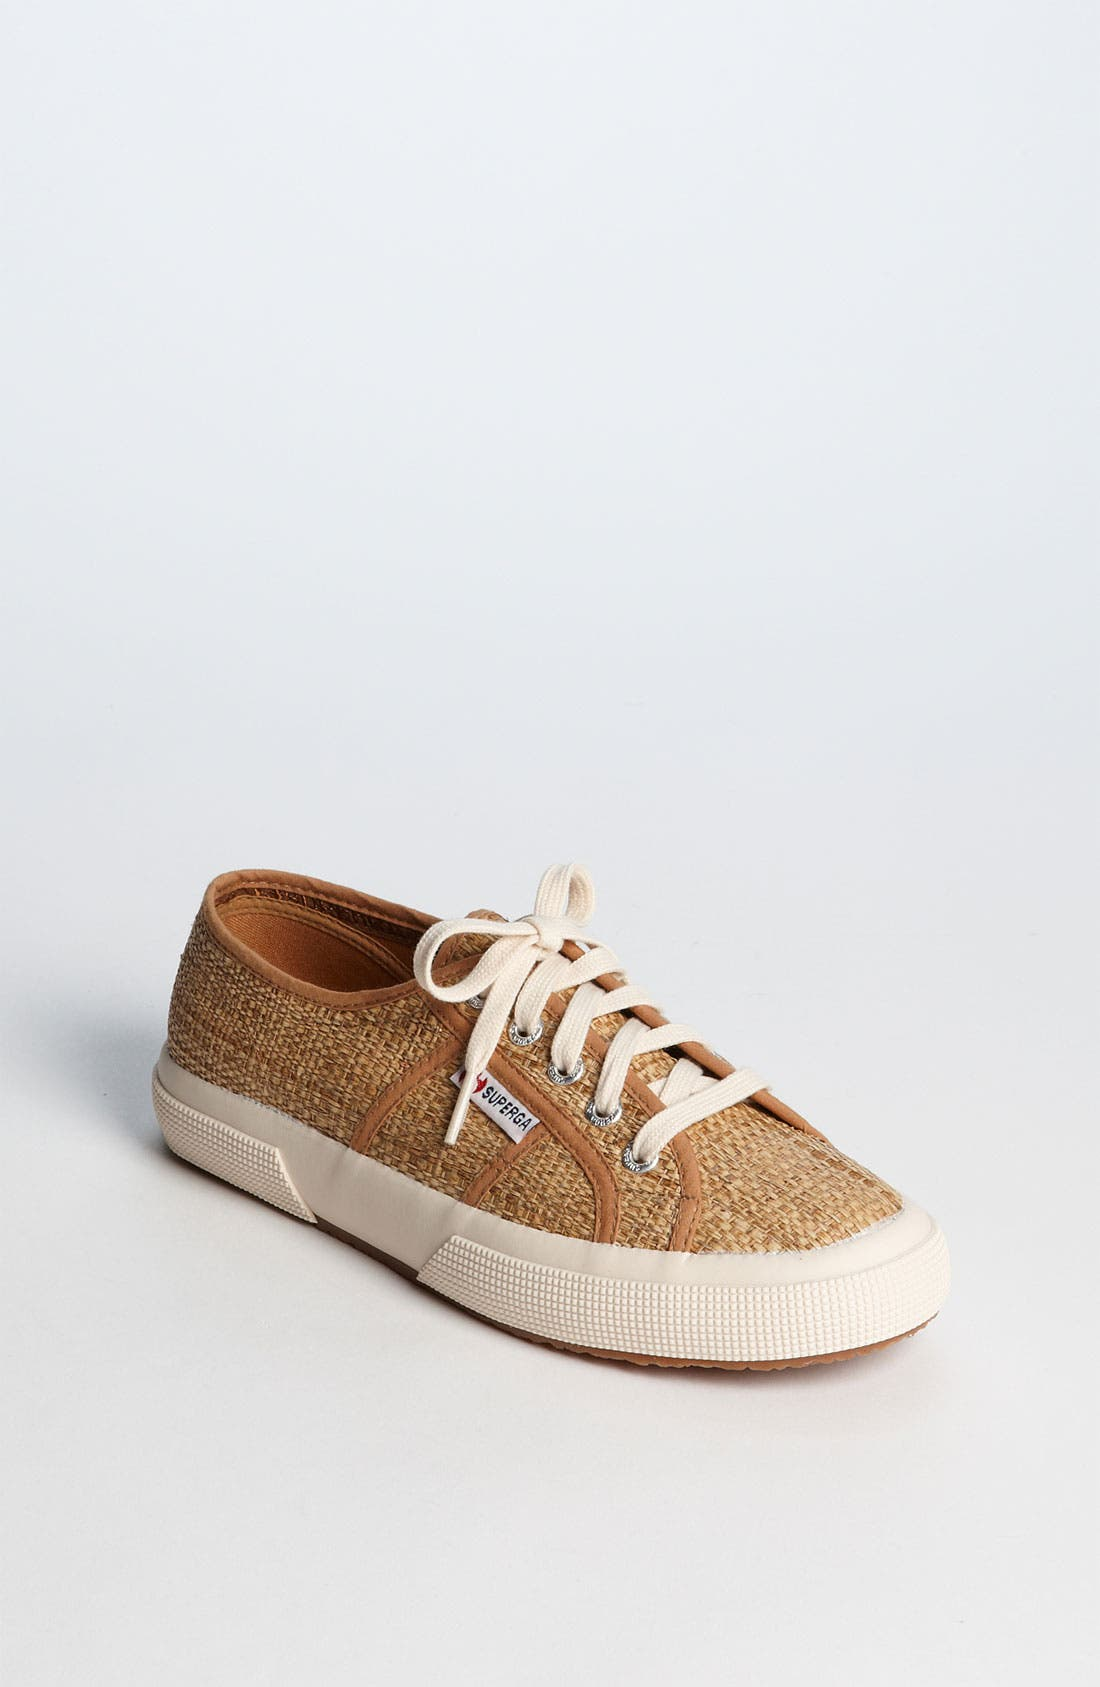 Alternate Image 1 Selected - Superga 'Raffia' Sneaker